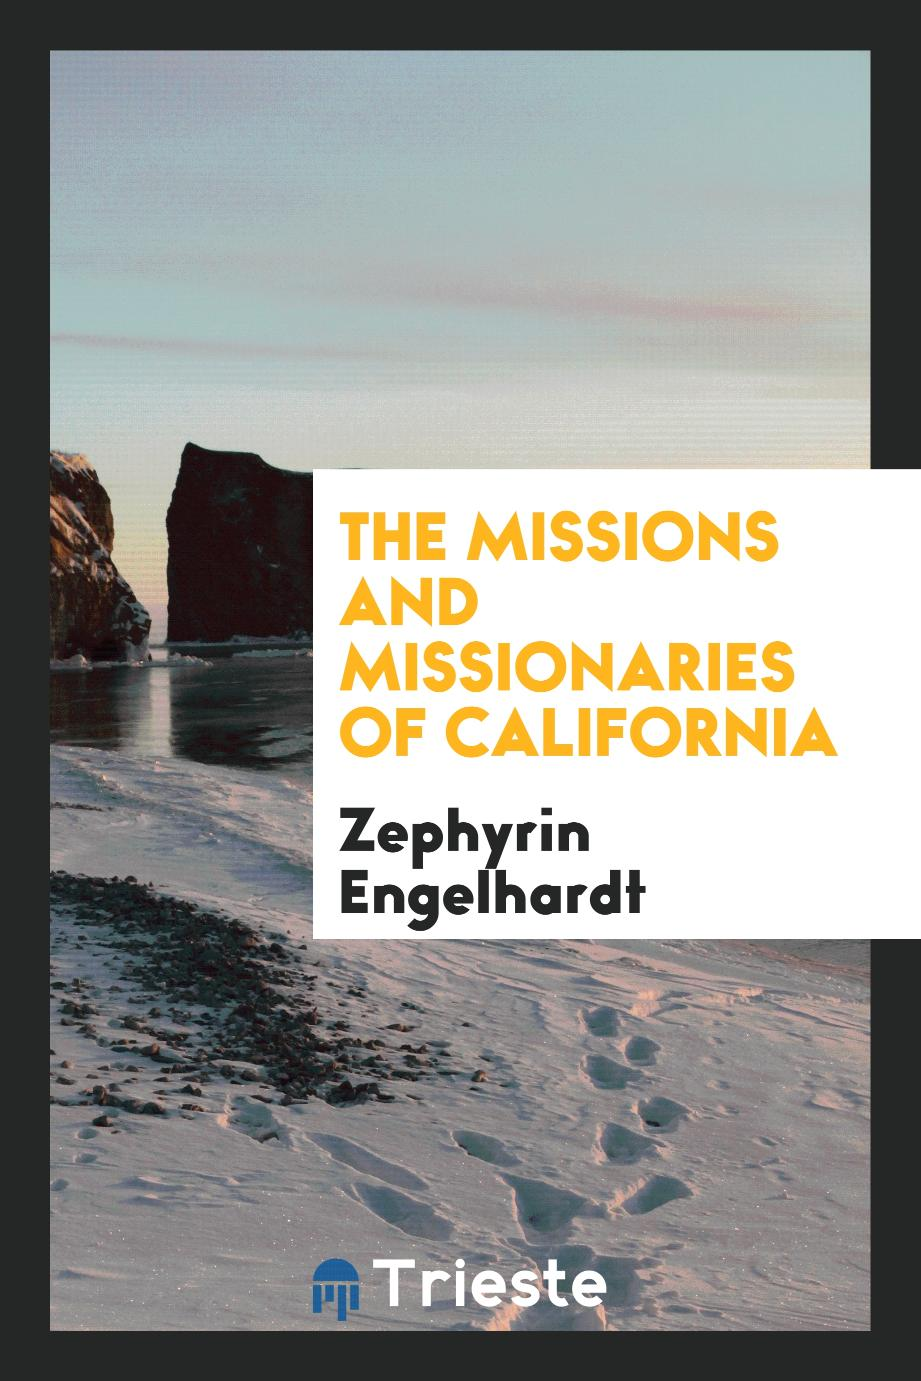 The Missions and Missionaries of California